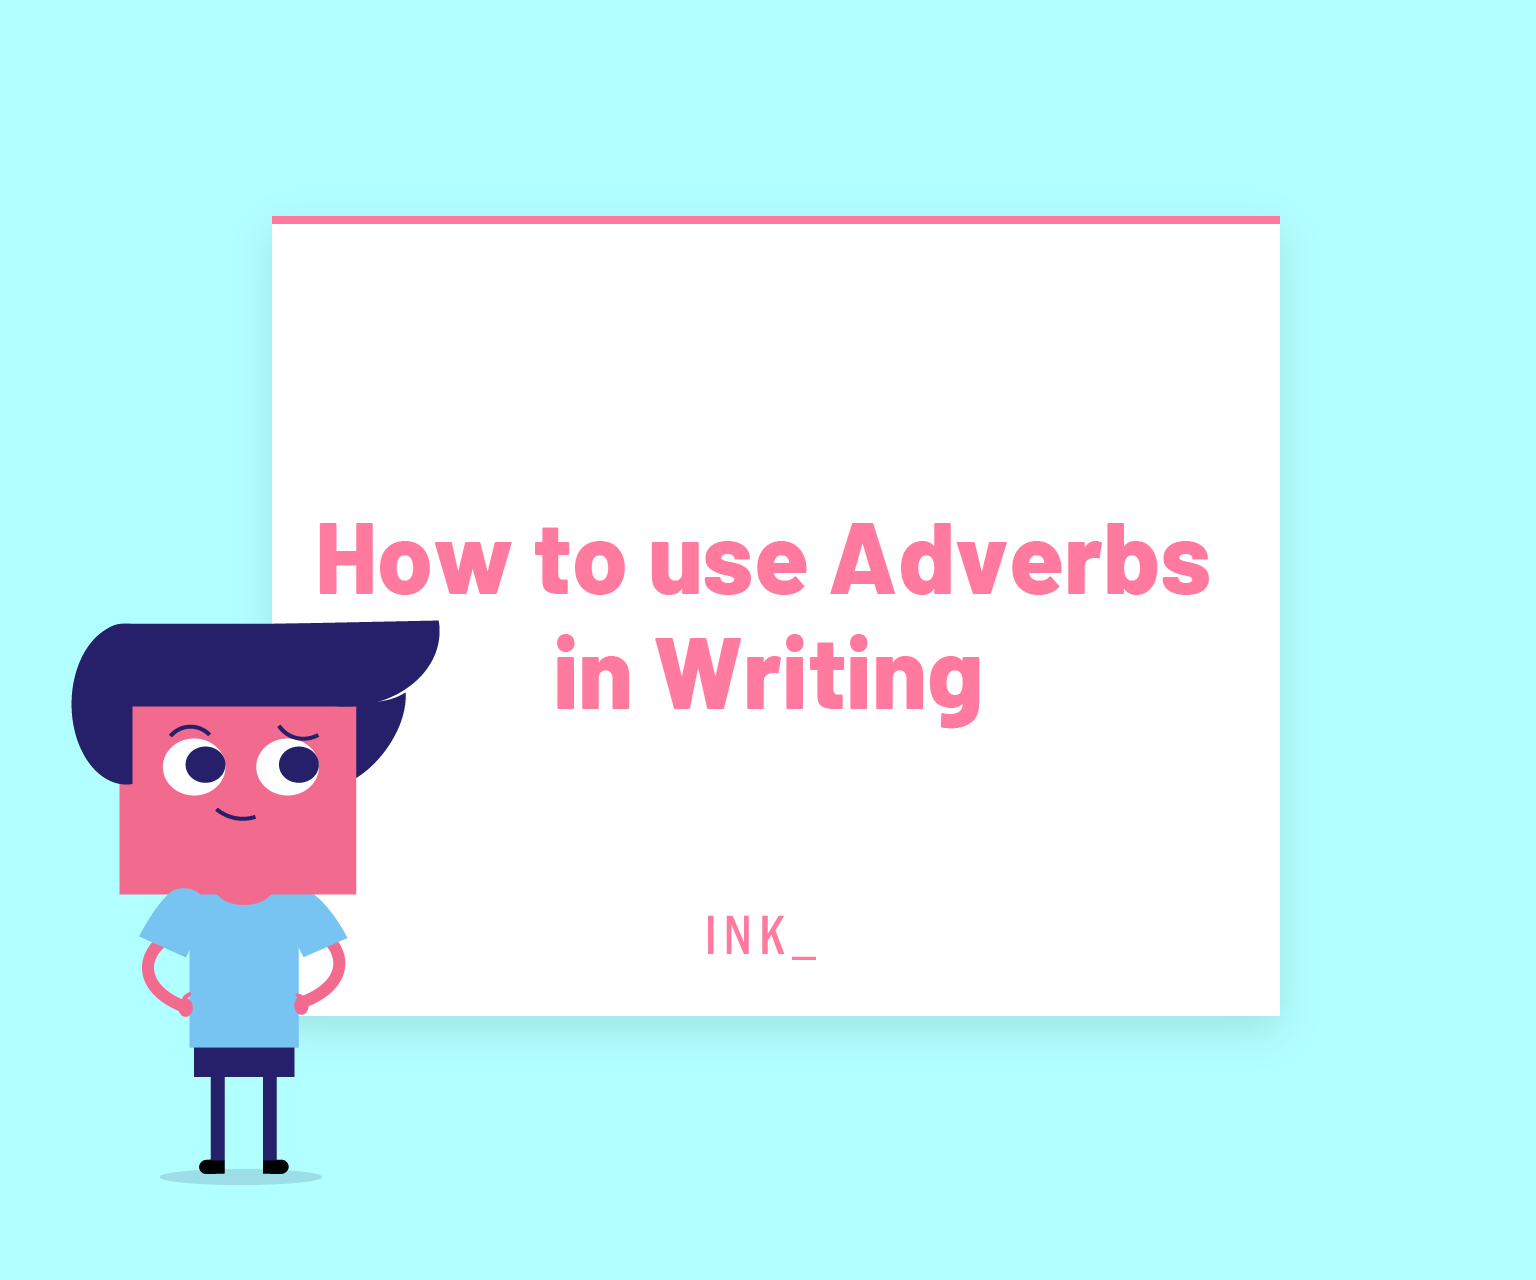 How to use adverbs in writing